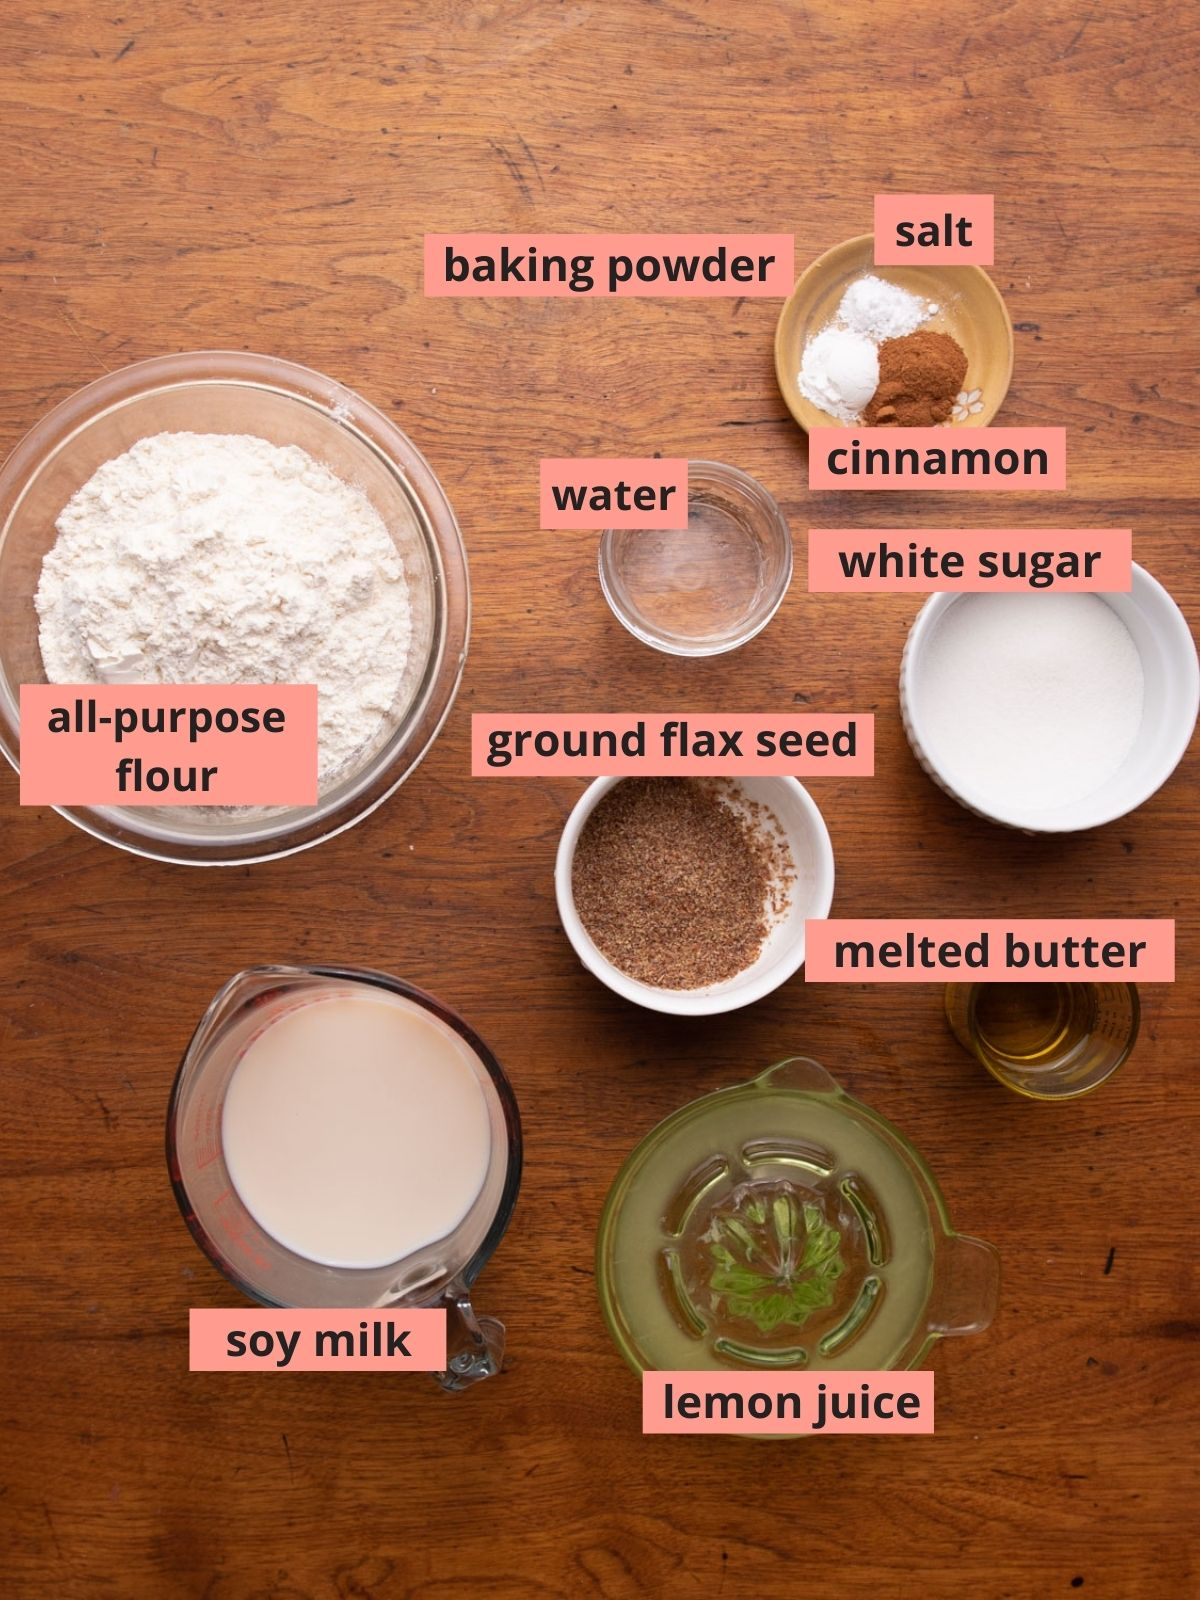 Labeled ingredients used to make pancakes